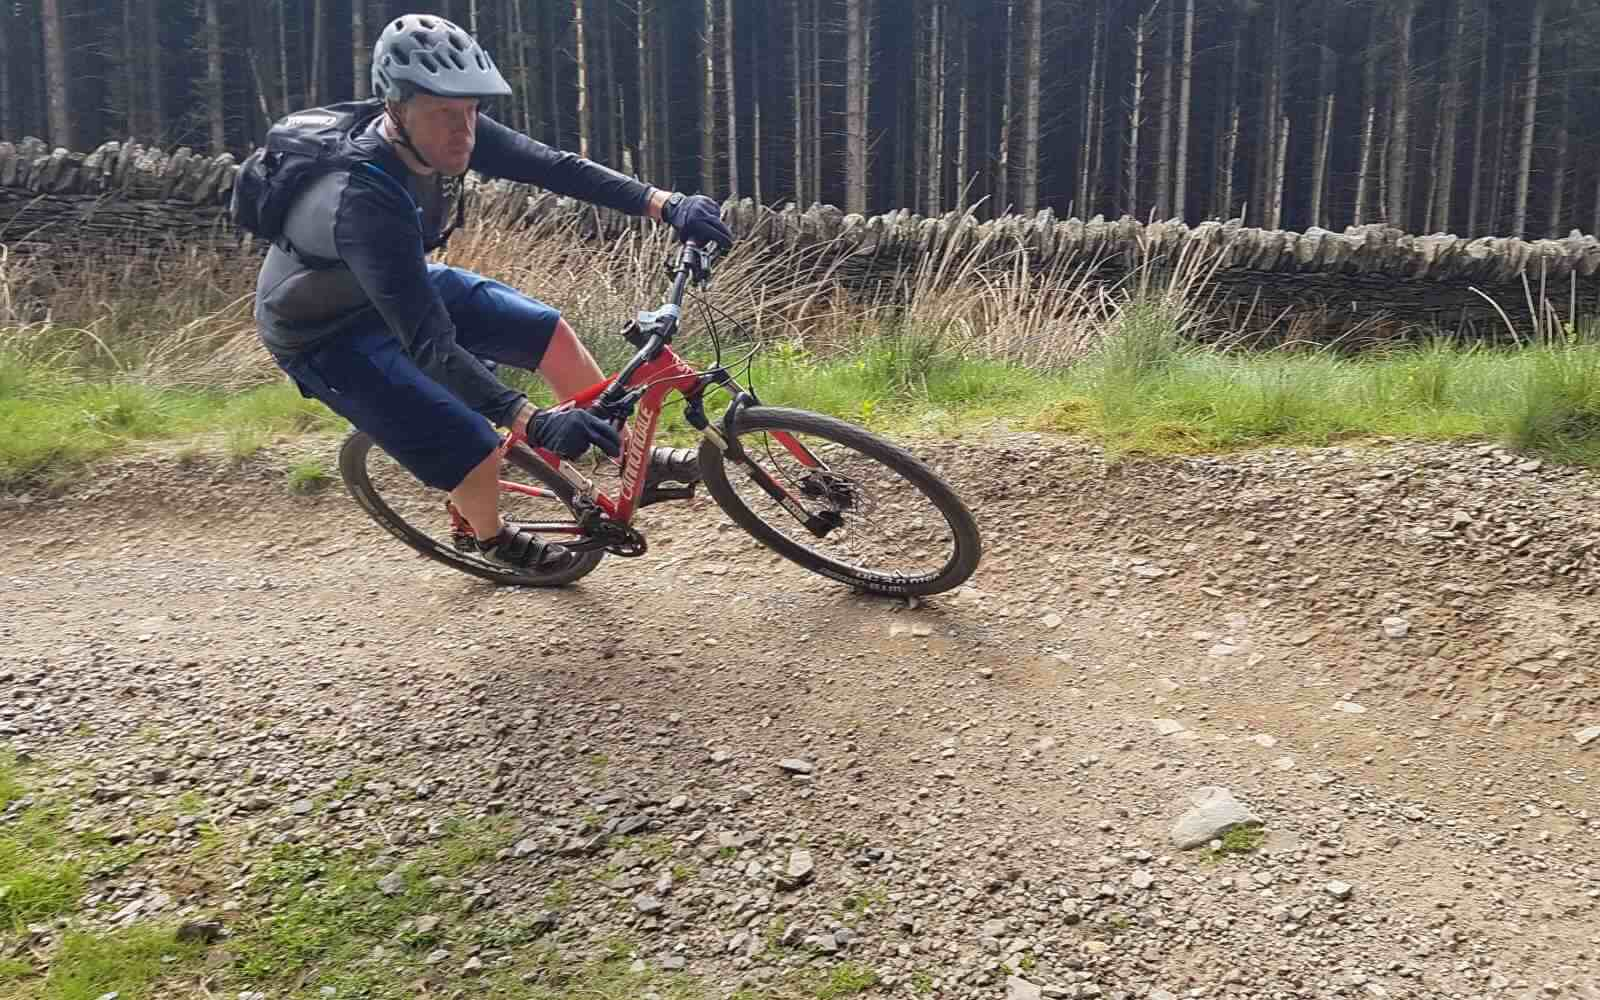 Mountain biker up close on trail Bike Park Wales